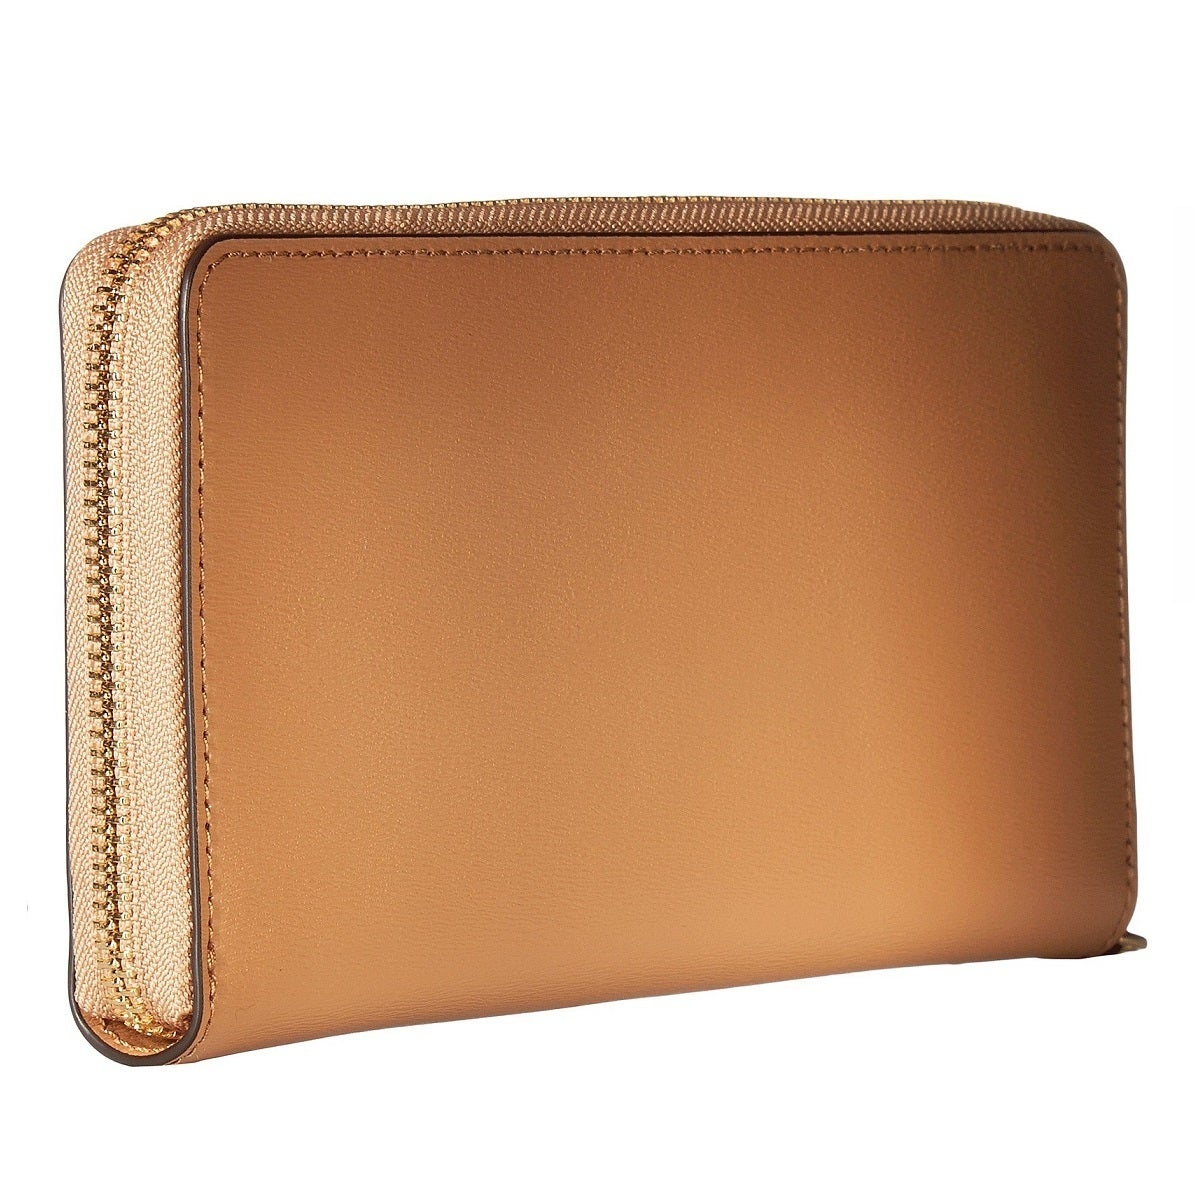 Tory Burch Parker Zip Tory Cardamom Continental Wallet - Free ...